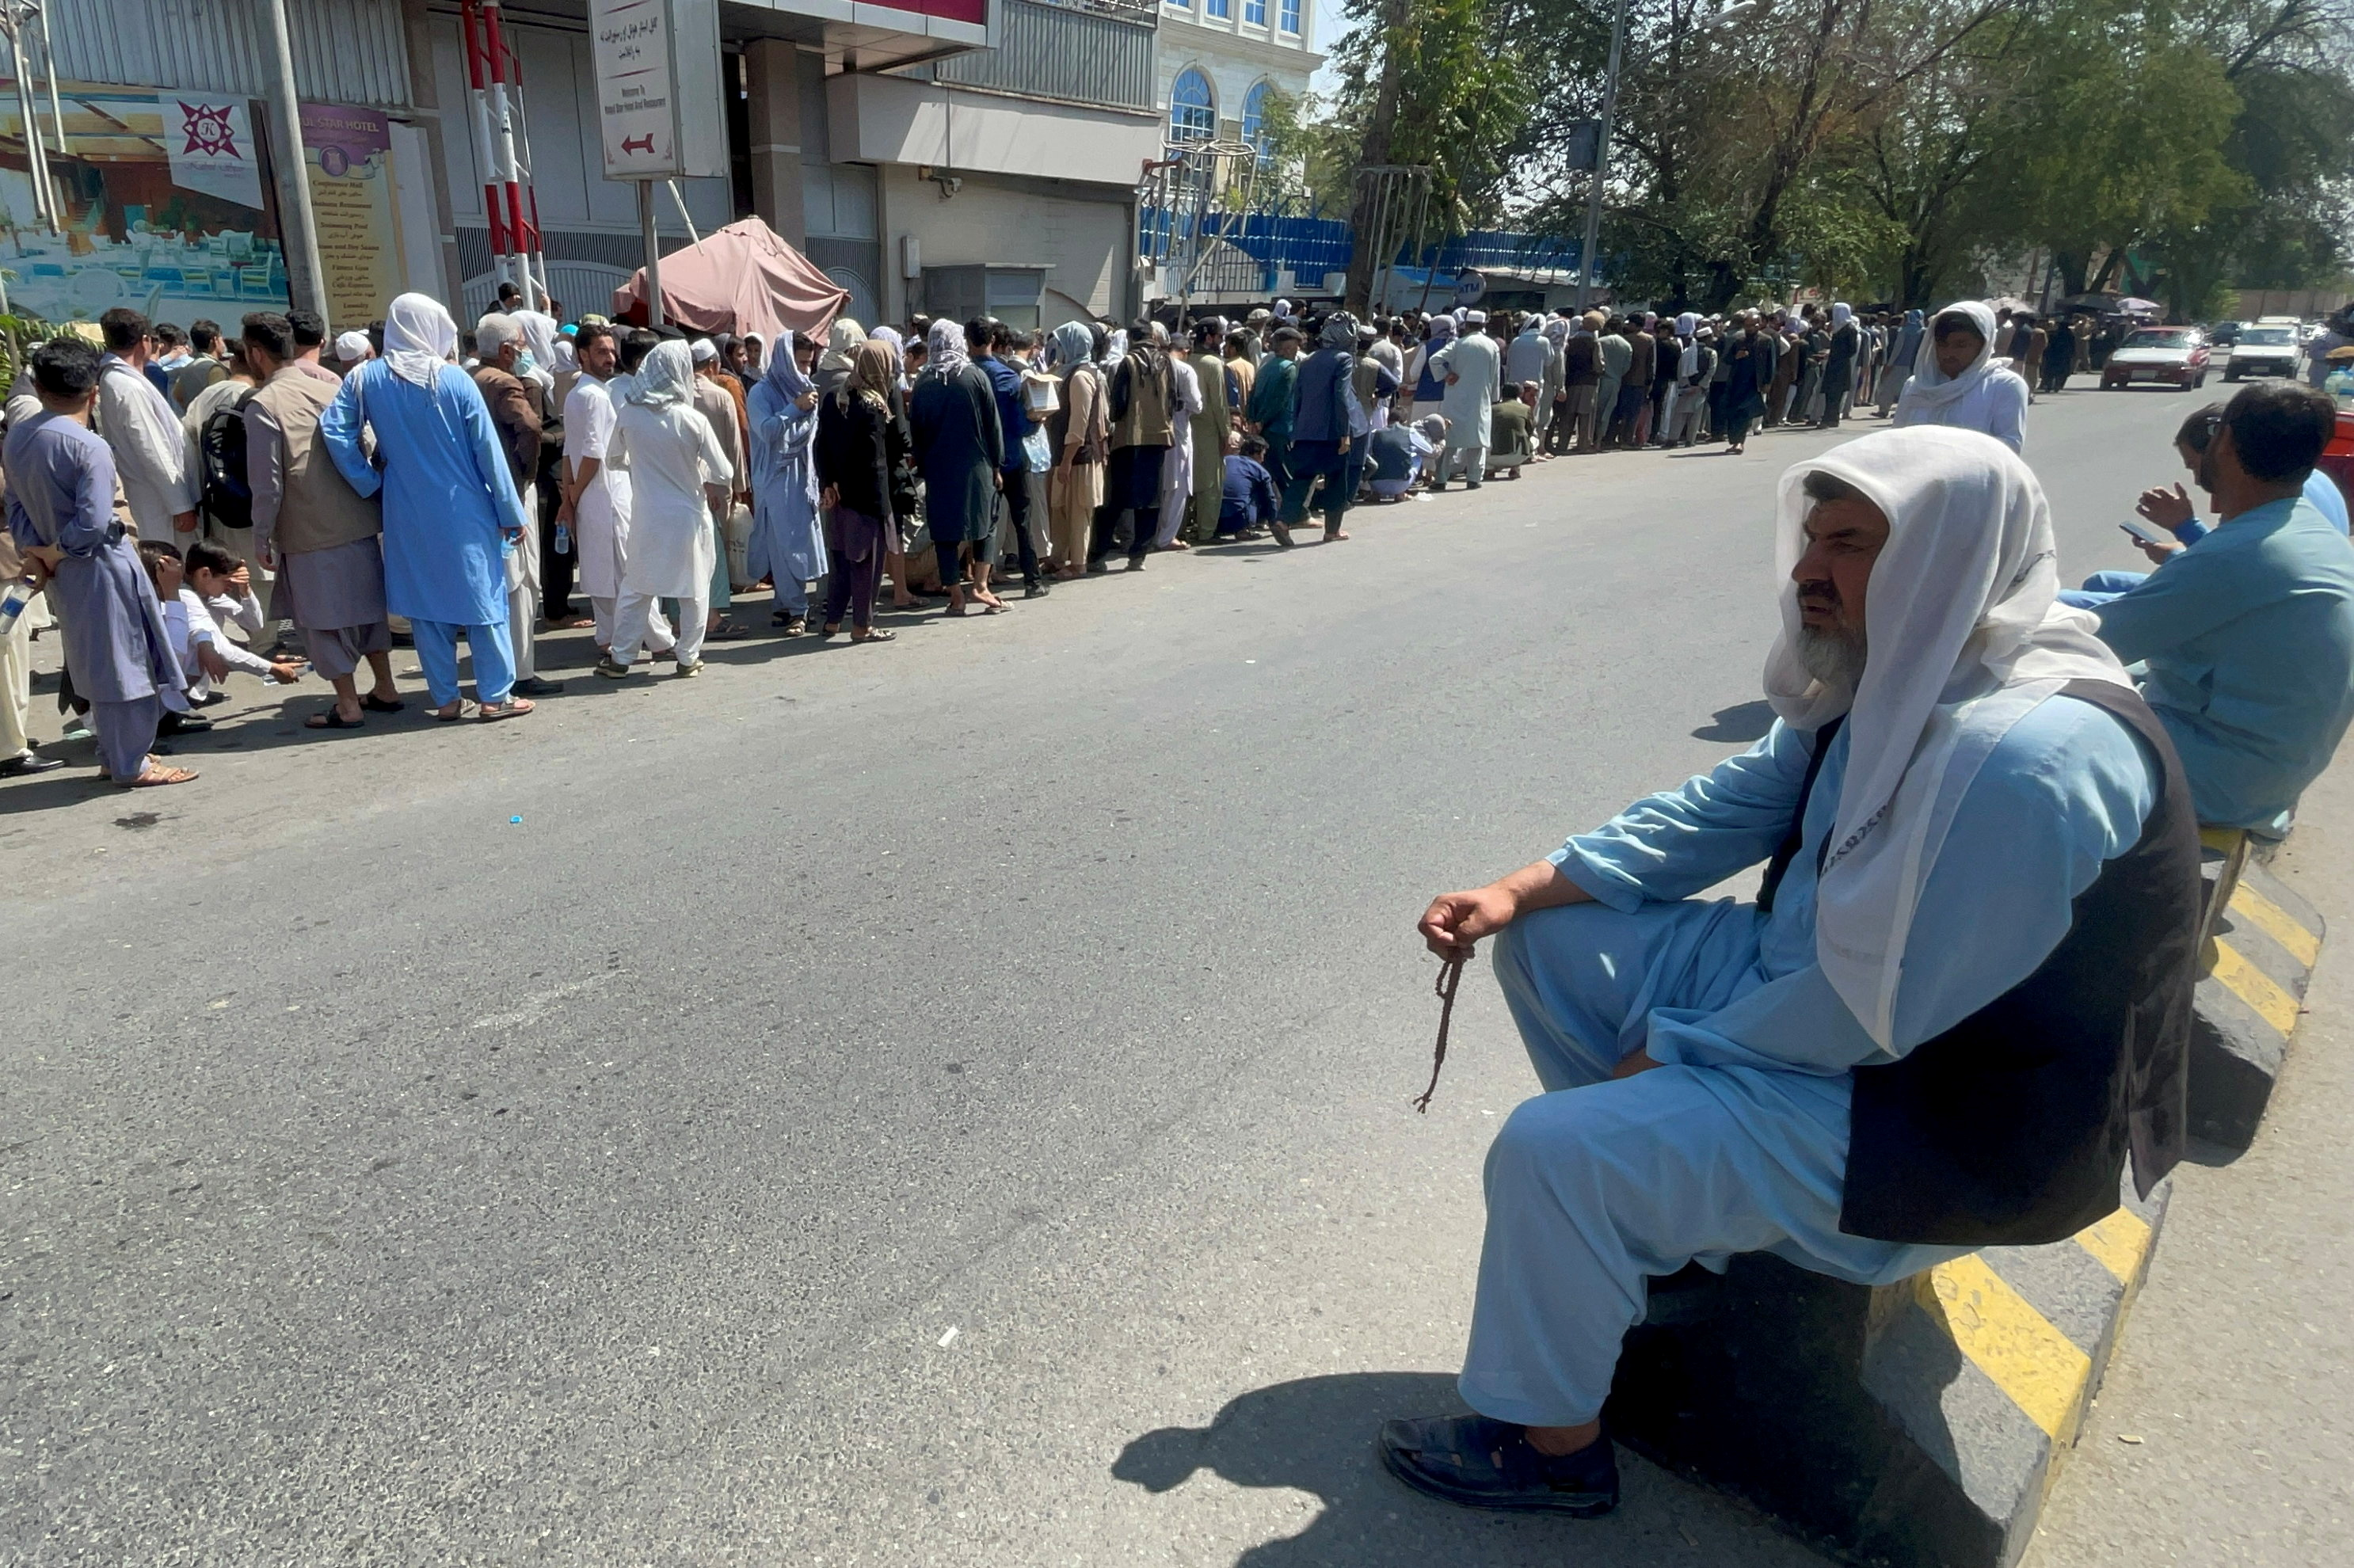 Afghans line up outside a bank to take out their money after Taliban takeover in Kabul, Afghanistan September 1, 2021. REUTERS/Stringer/File Photo